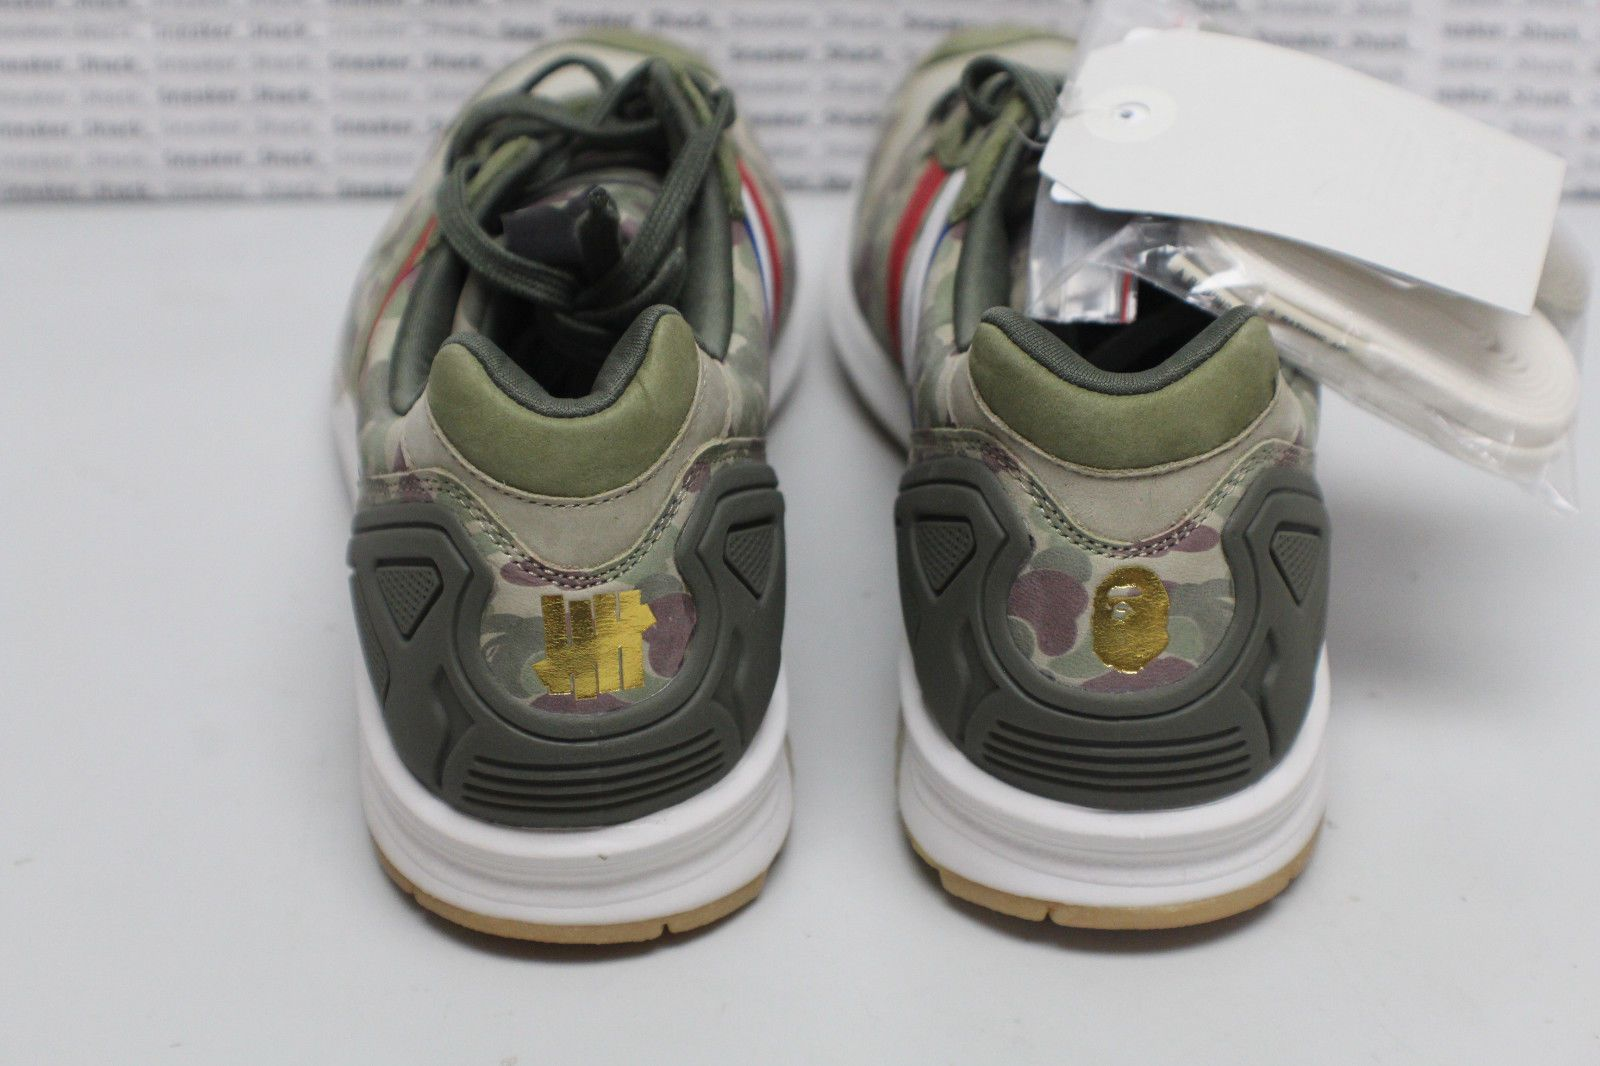 6c840cbc9aa0e NEW DS Adidas Undefeated BAPE A Bathing Ape ZX 5000 Camo Q34751 - Size 8.5